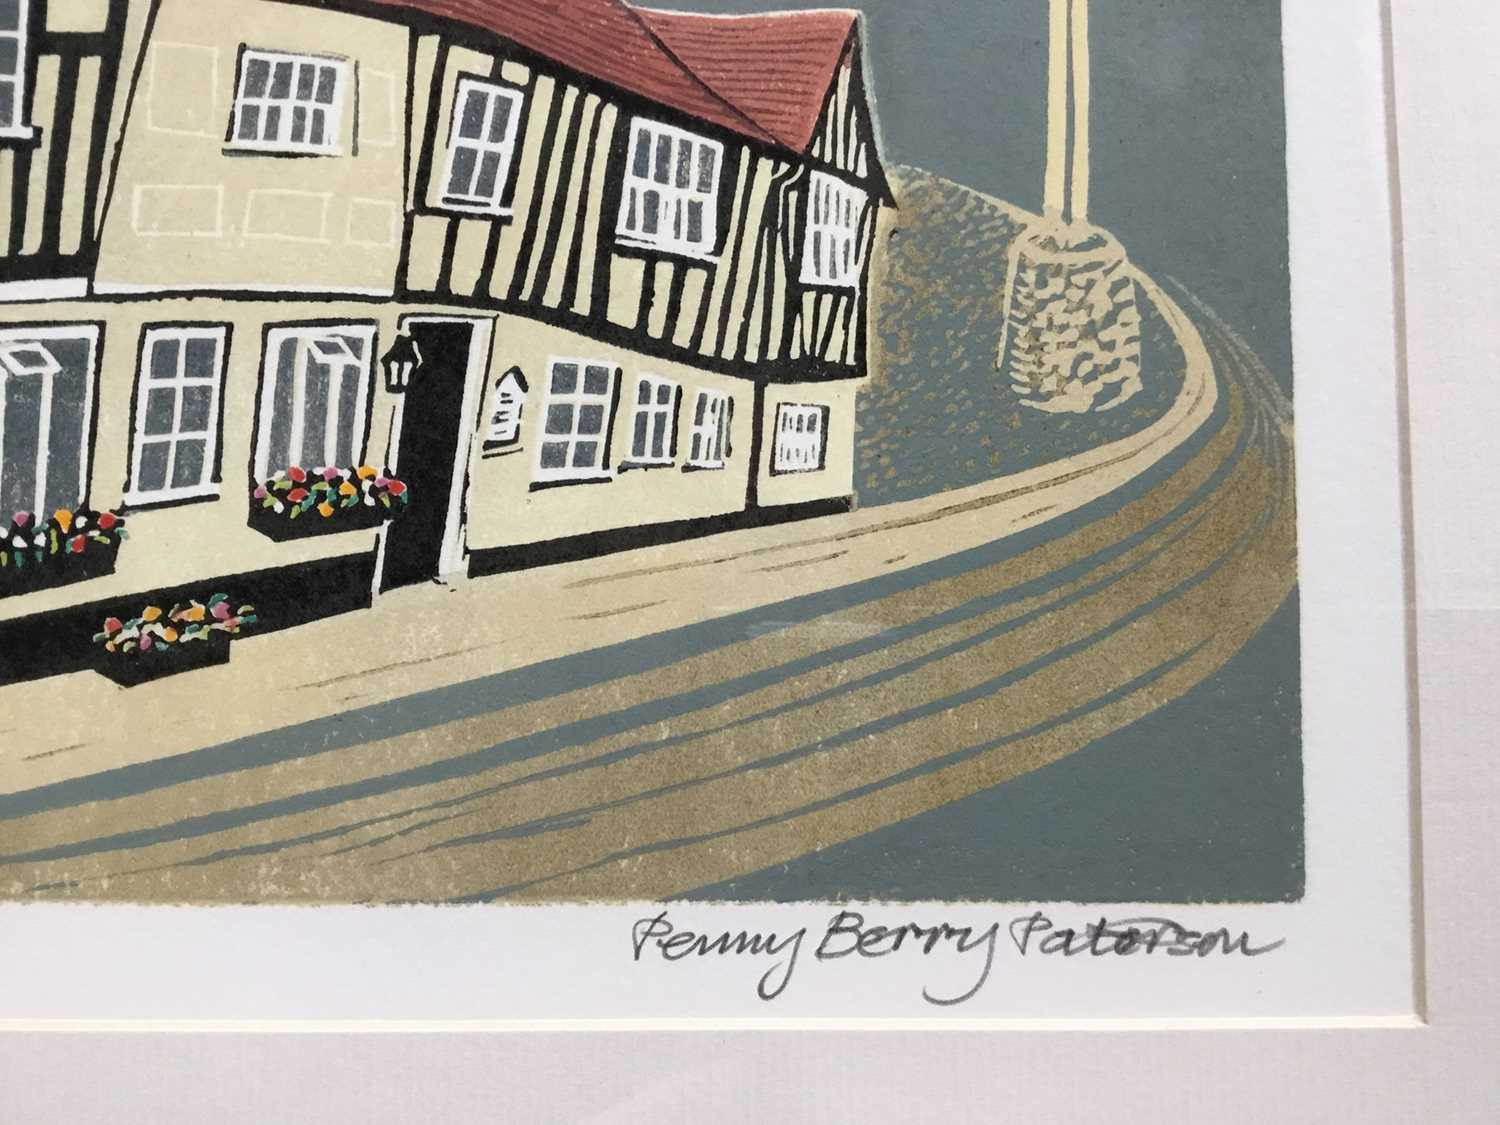 Penny Berry Patterson (1941-2021) colour linocut, Castle Hedingham, signed titled and numbered 10/20 - Image 2 of 6